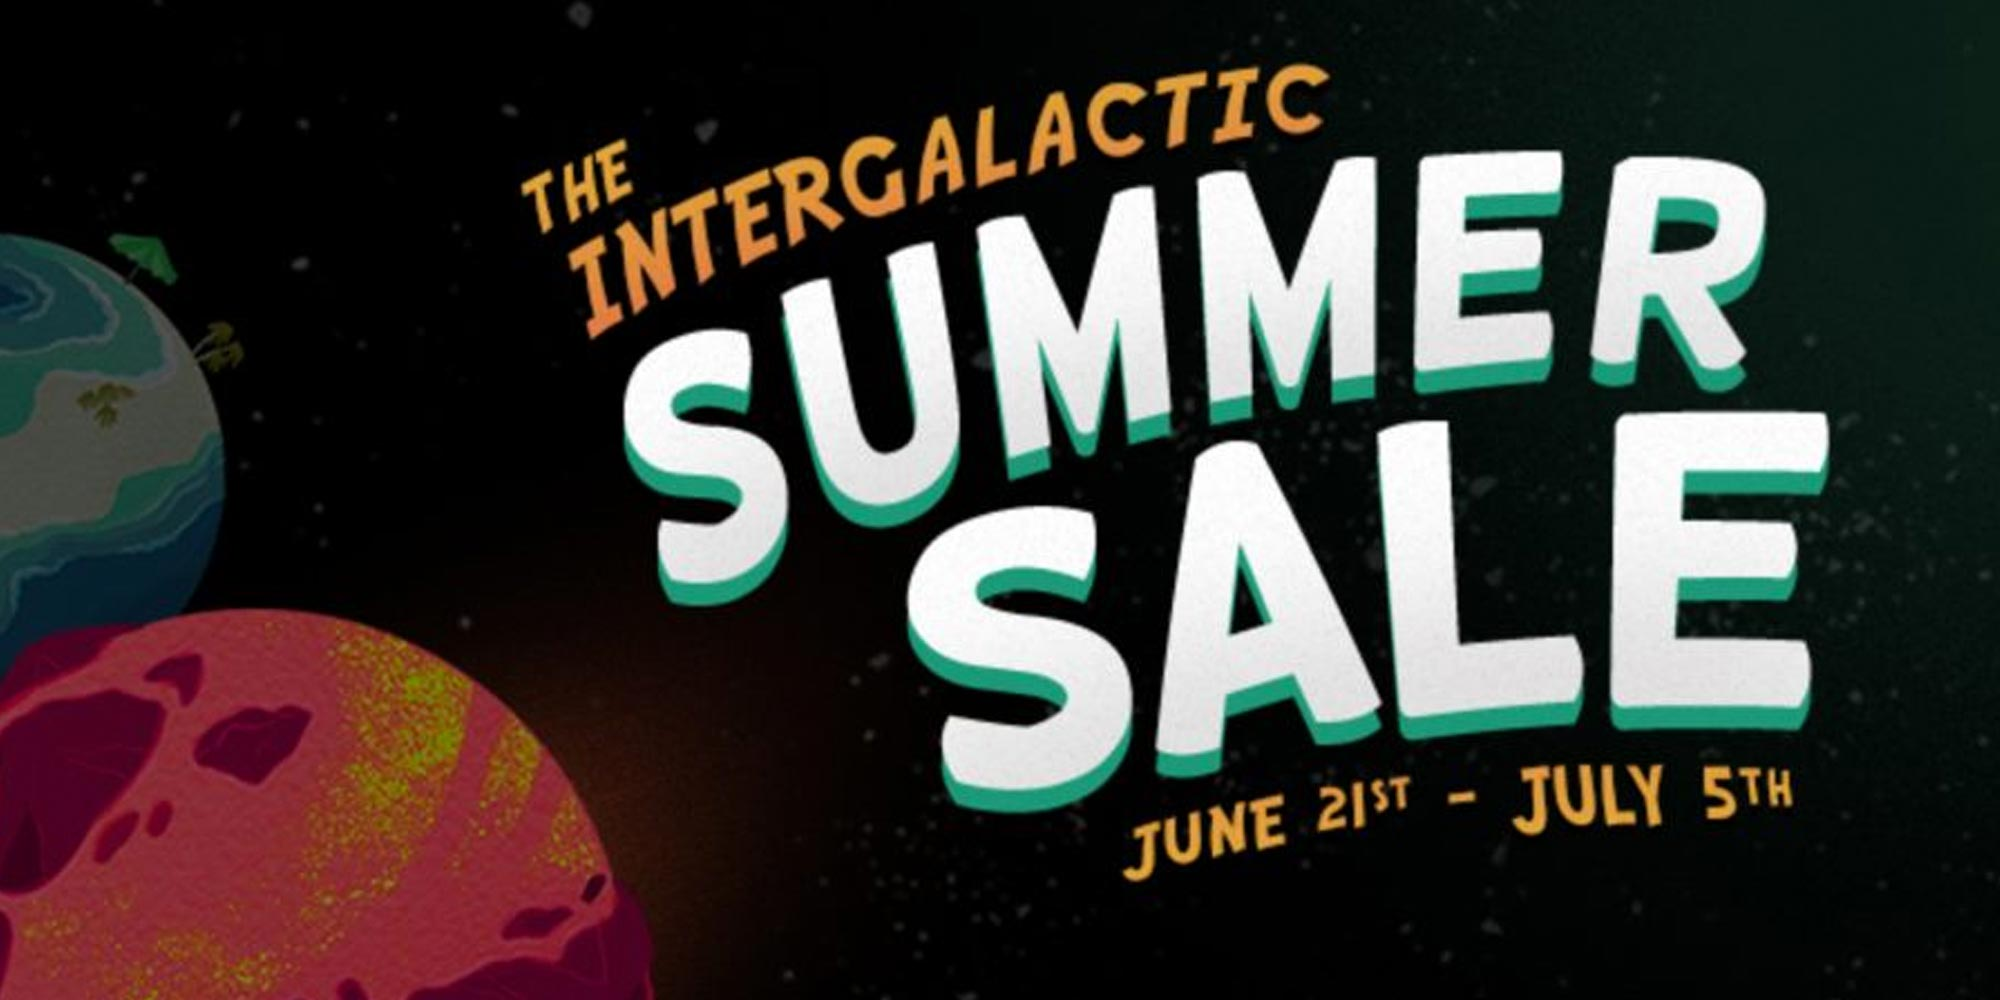 Steam Summer Sale is here! Score massive discounts on The